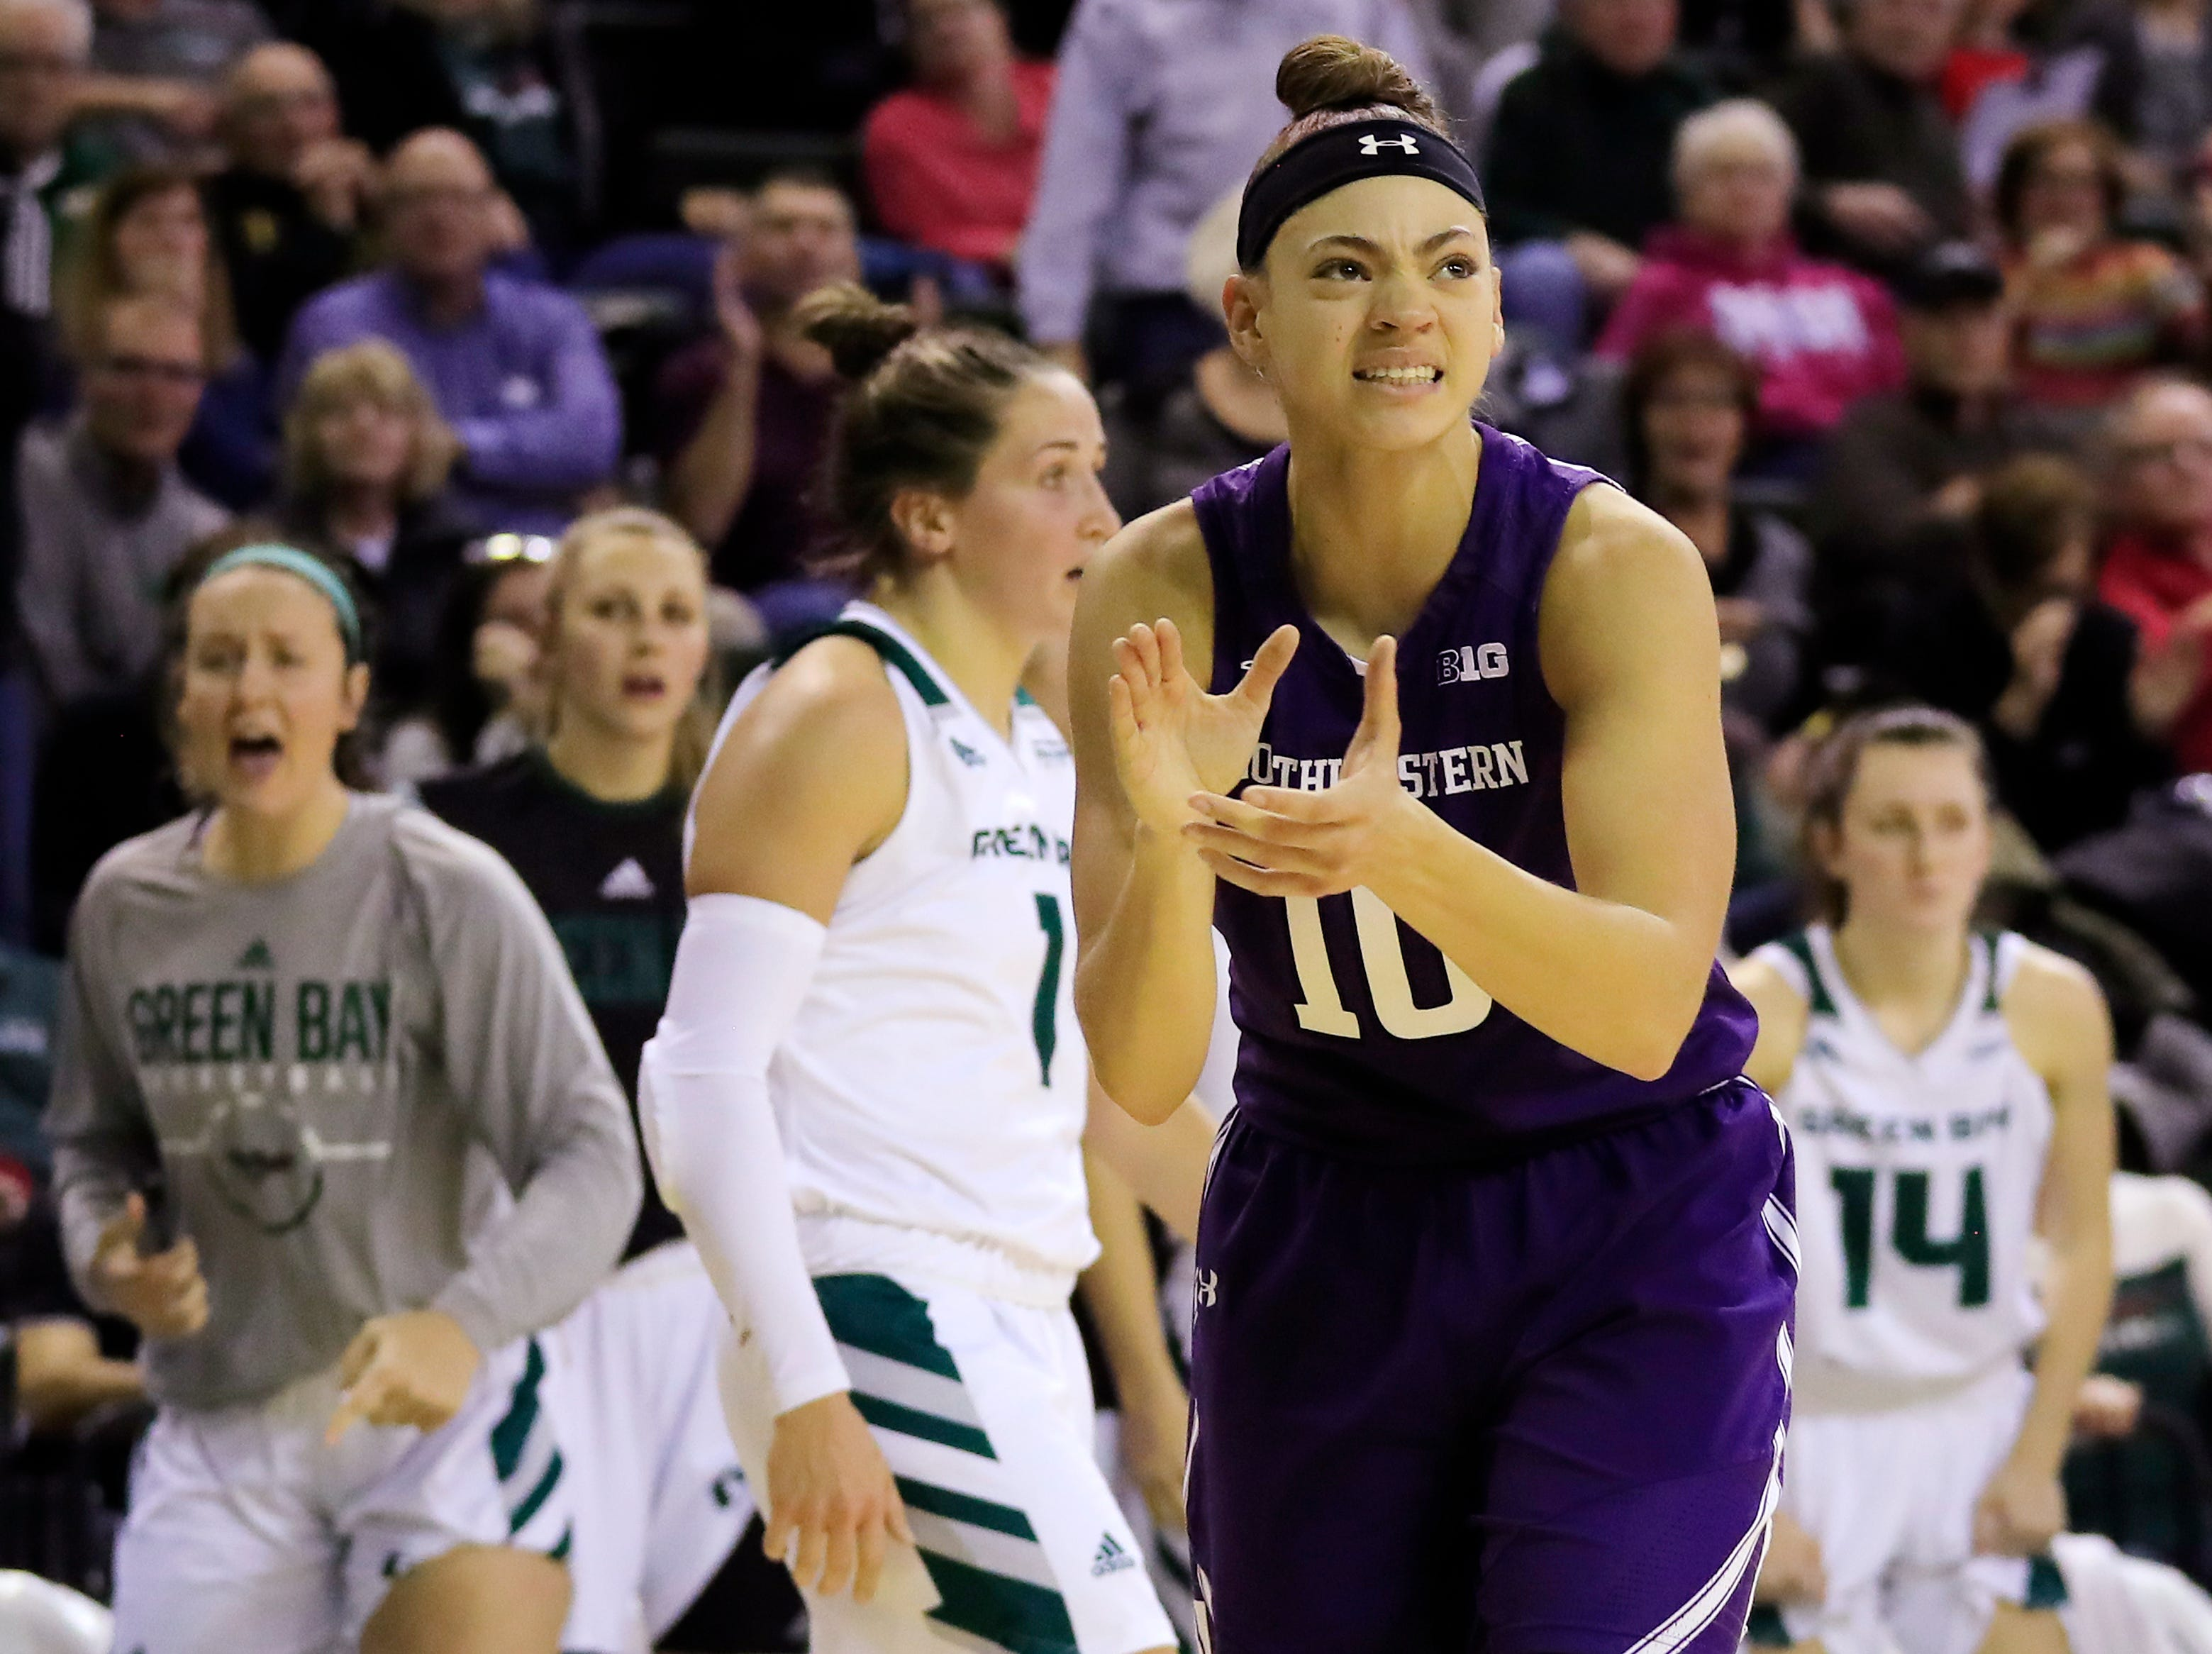 Northwestern Wildcats guard Lindsey Pulliam (10) reacts in the final seconds against the Green Bay Phoenix in a women's NCAA basketball game at the Kress Center on Tuesday, November 6, 2018 in Green Bay, Wis.